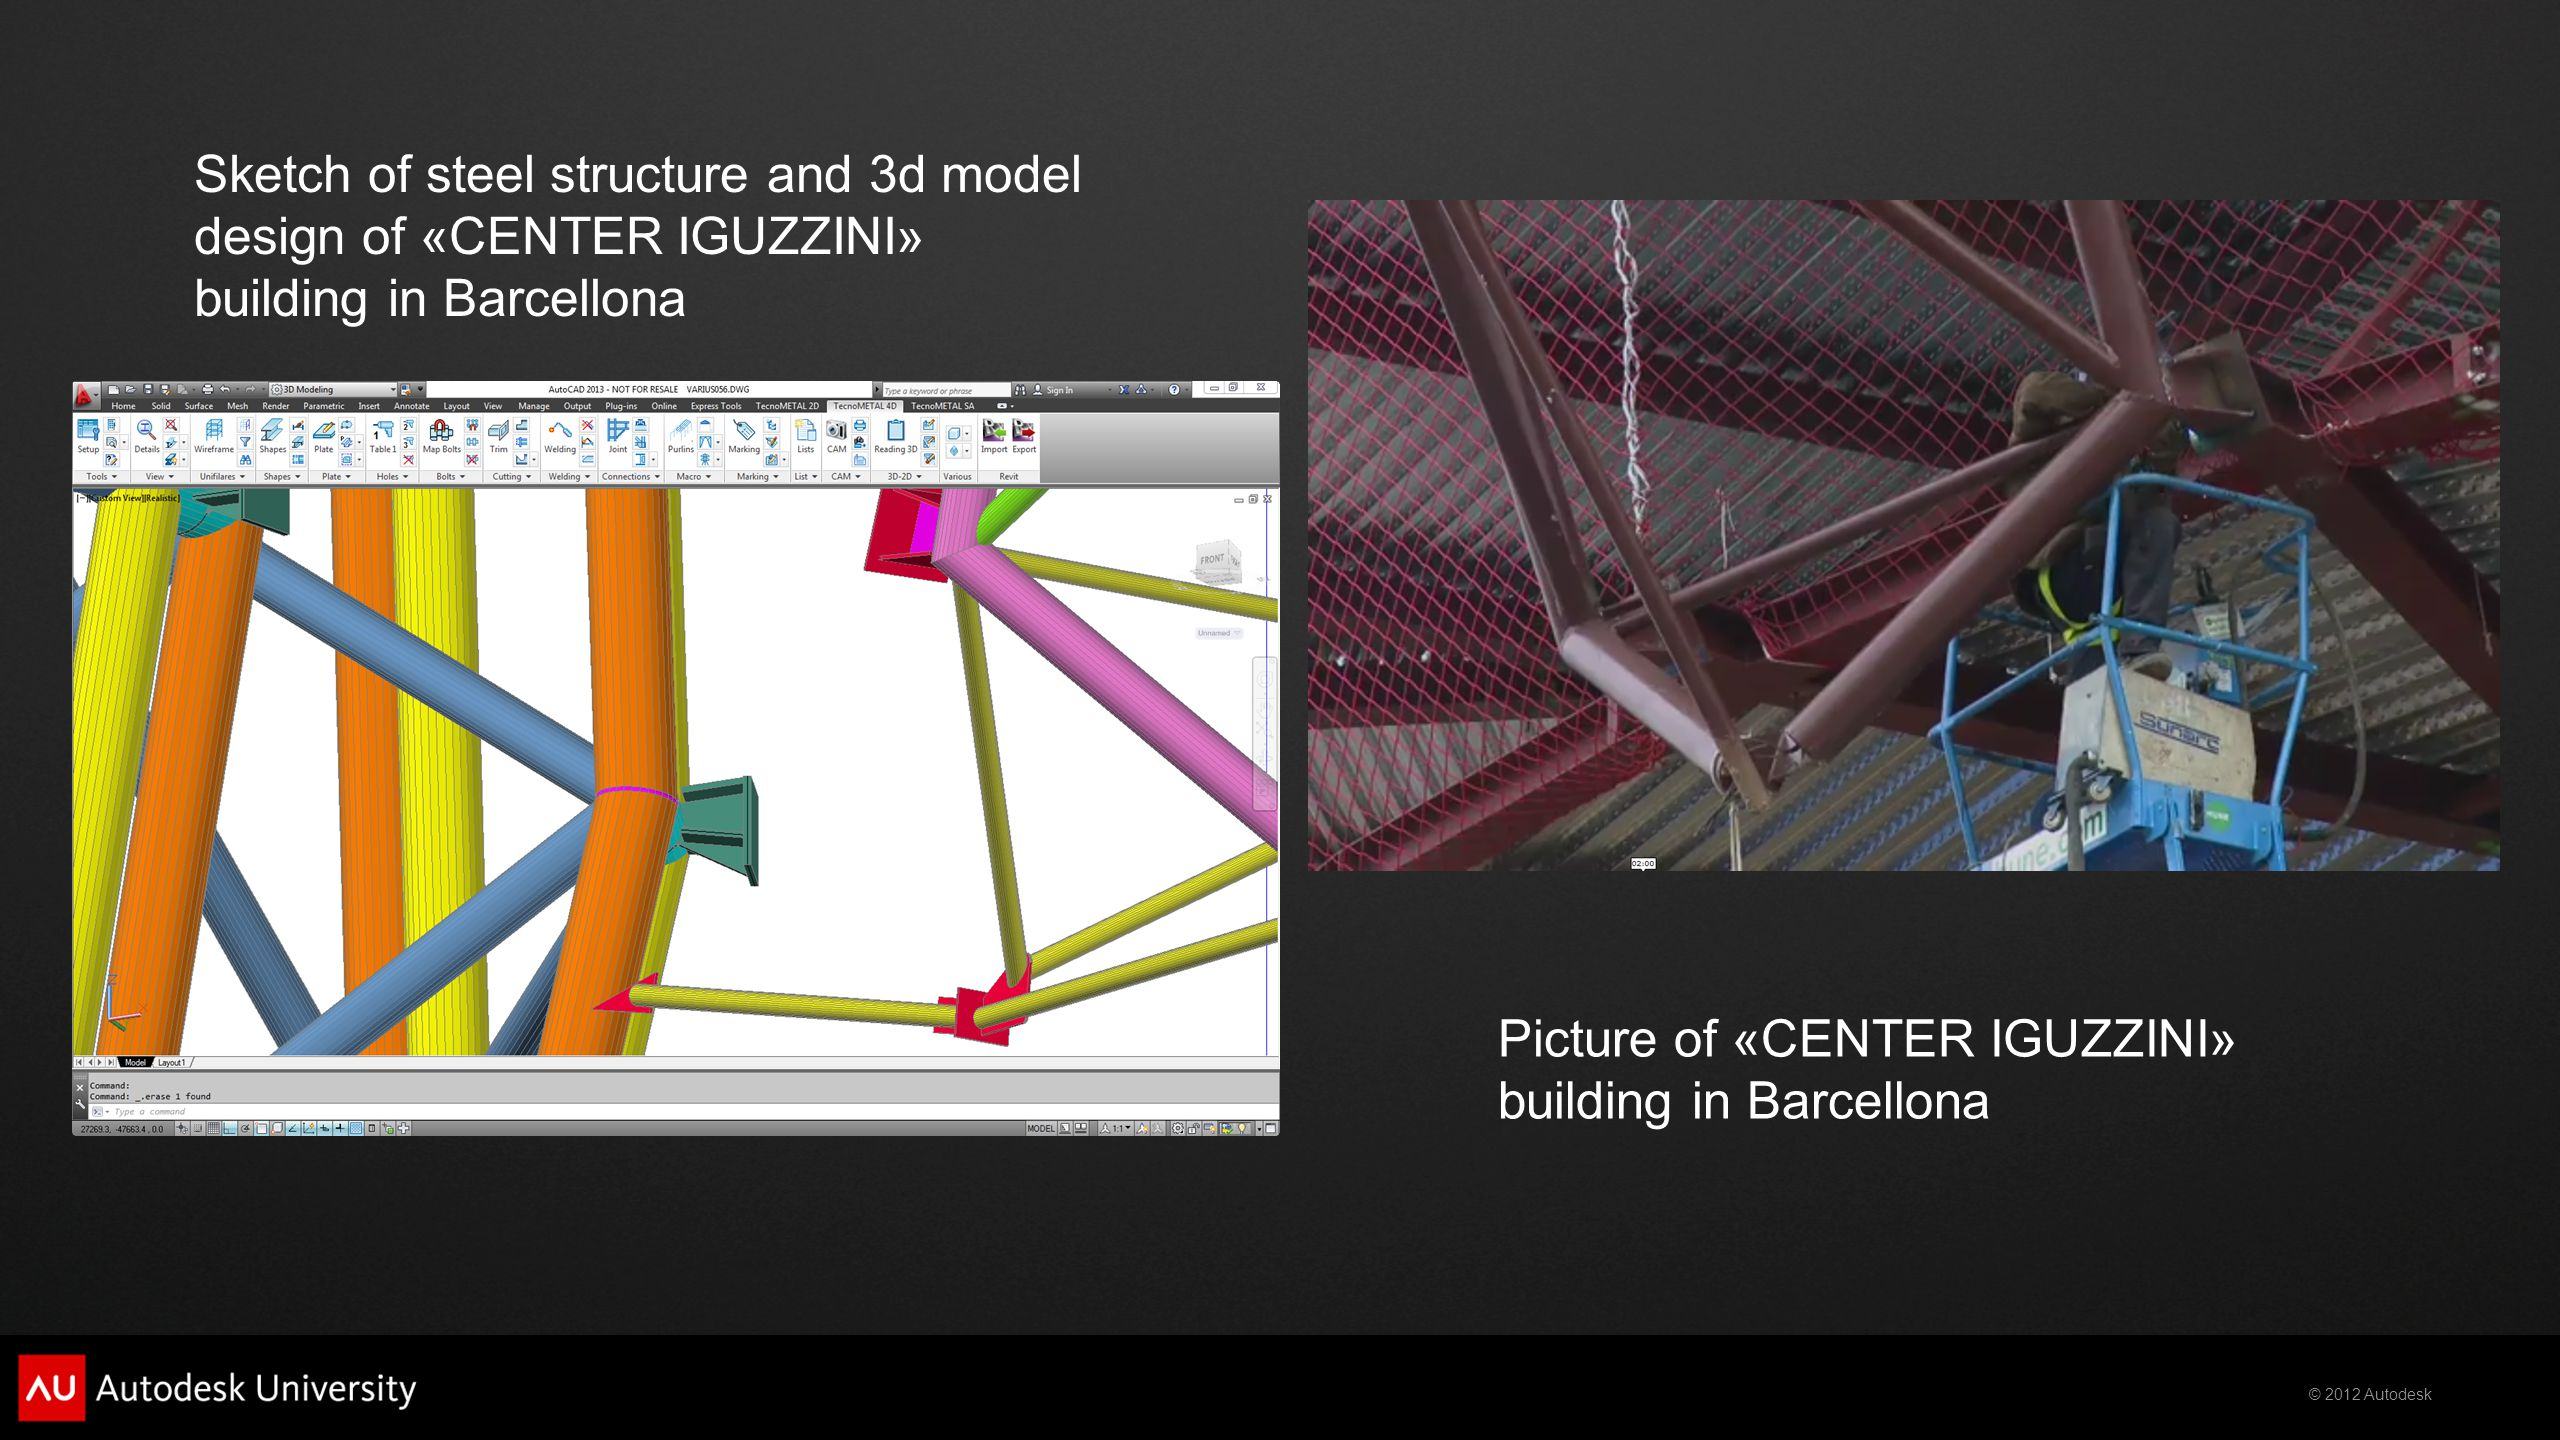 Sketch of steel structure and 3d model design of «CENTER IGUZZINI» building in Barcellona